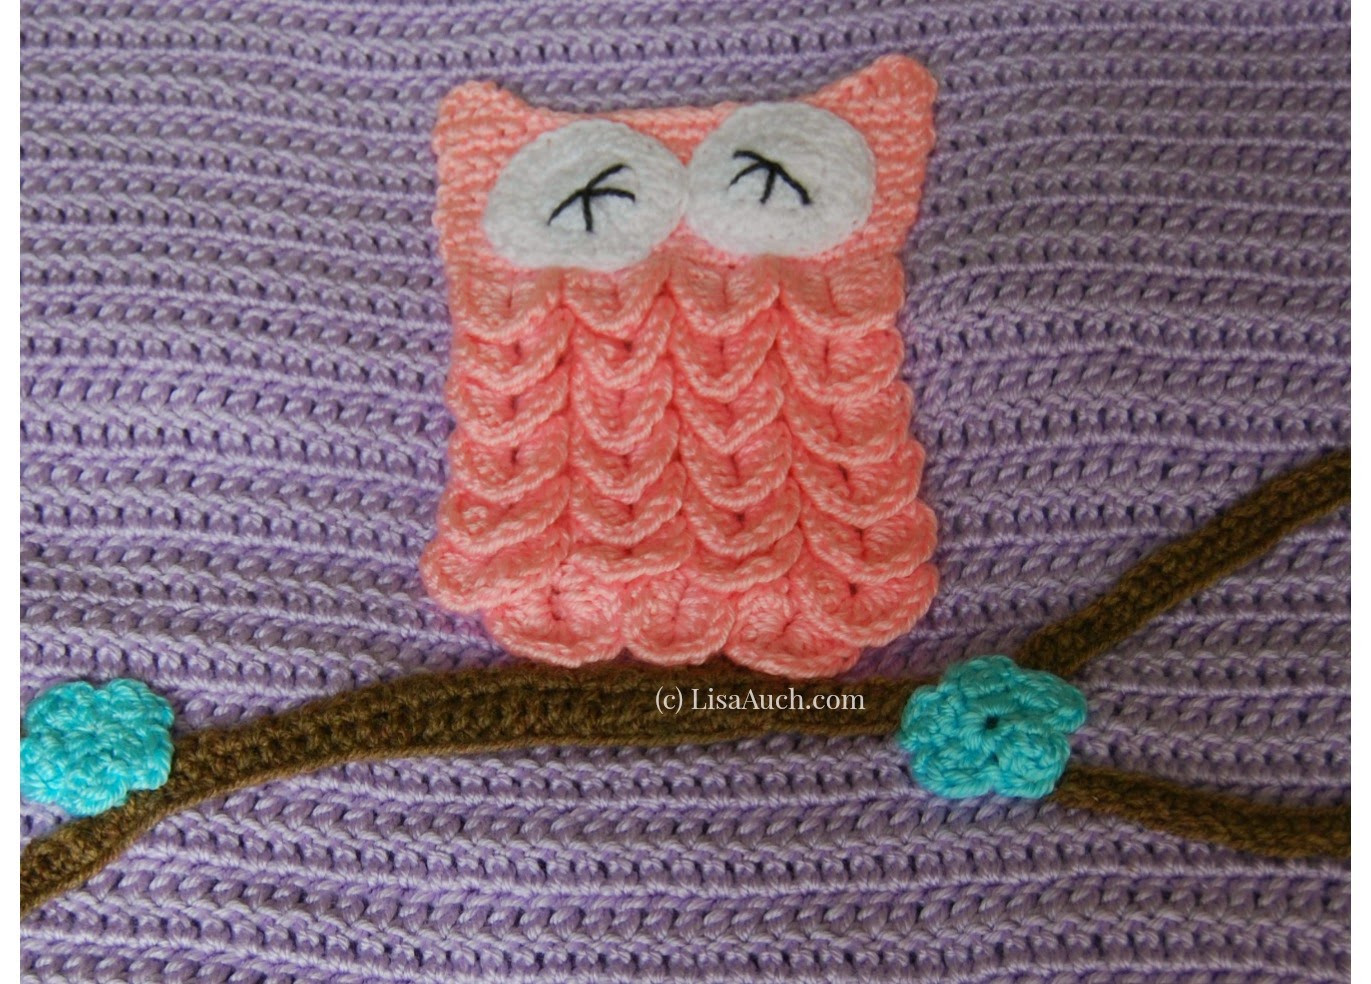 Crochet Owl Blanket Pattern Best Of Free Crochet Pattern Easy Baby Blanket with Optional Owl Applique Of Luxury 42 Models Crochet Owl Blanket Pattern